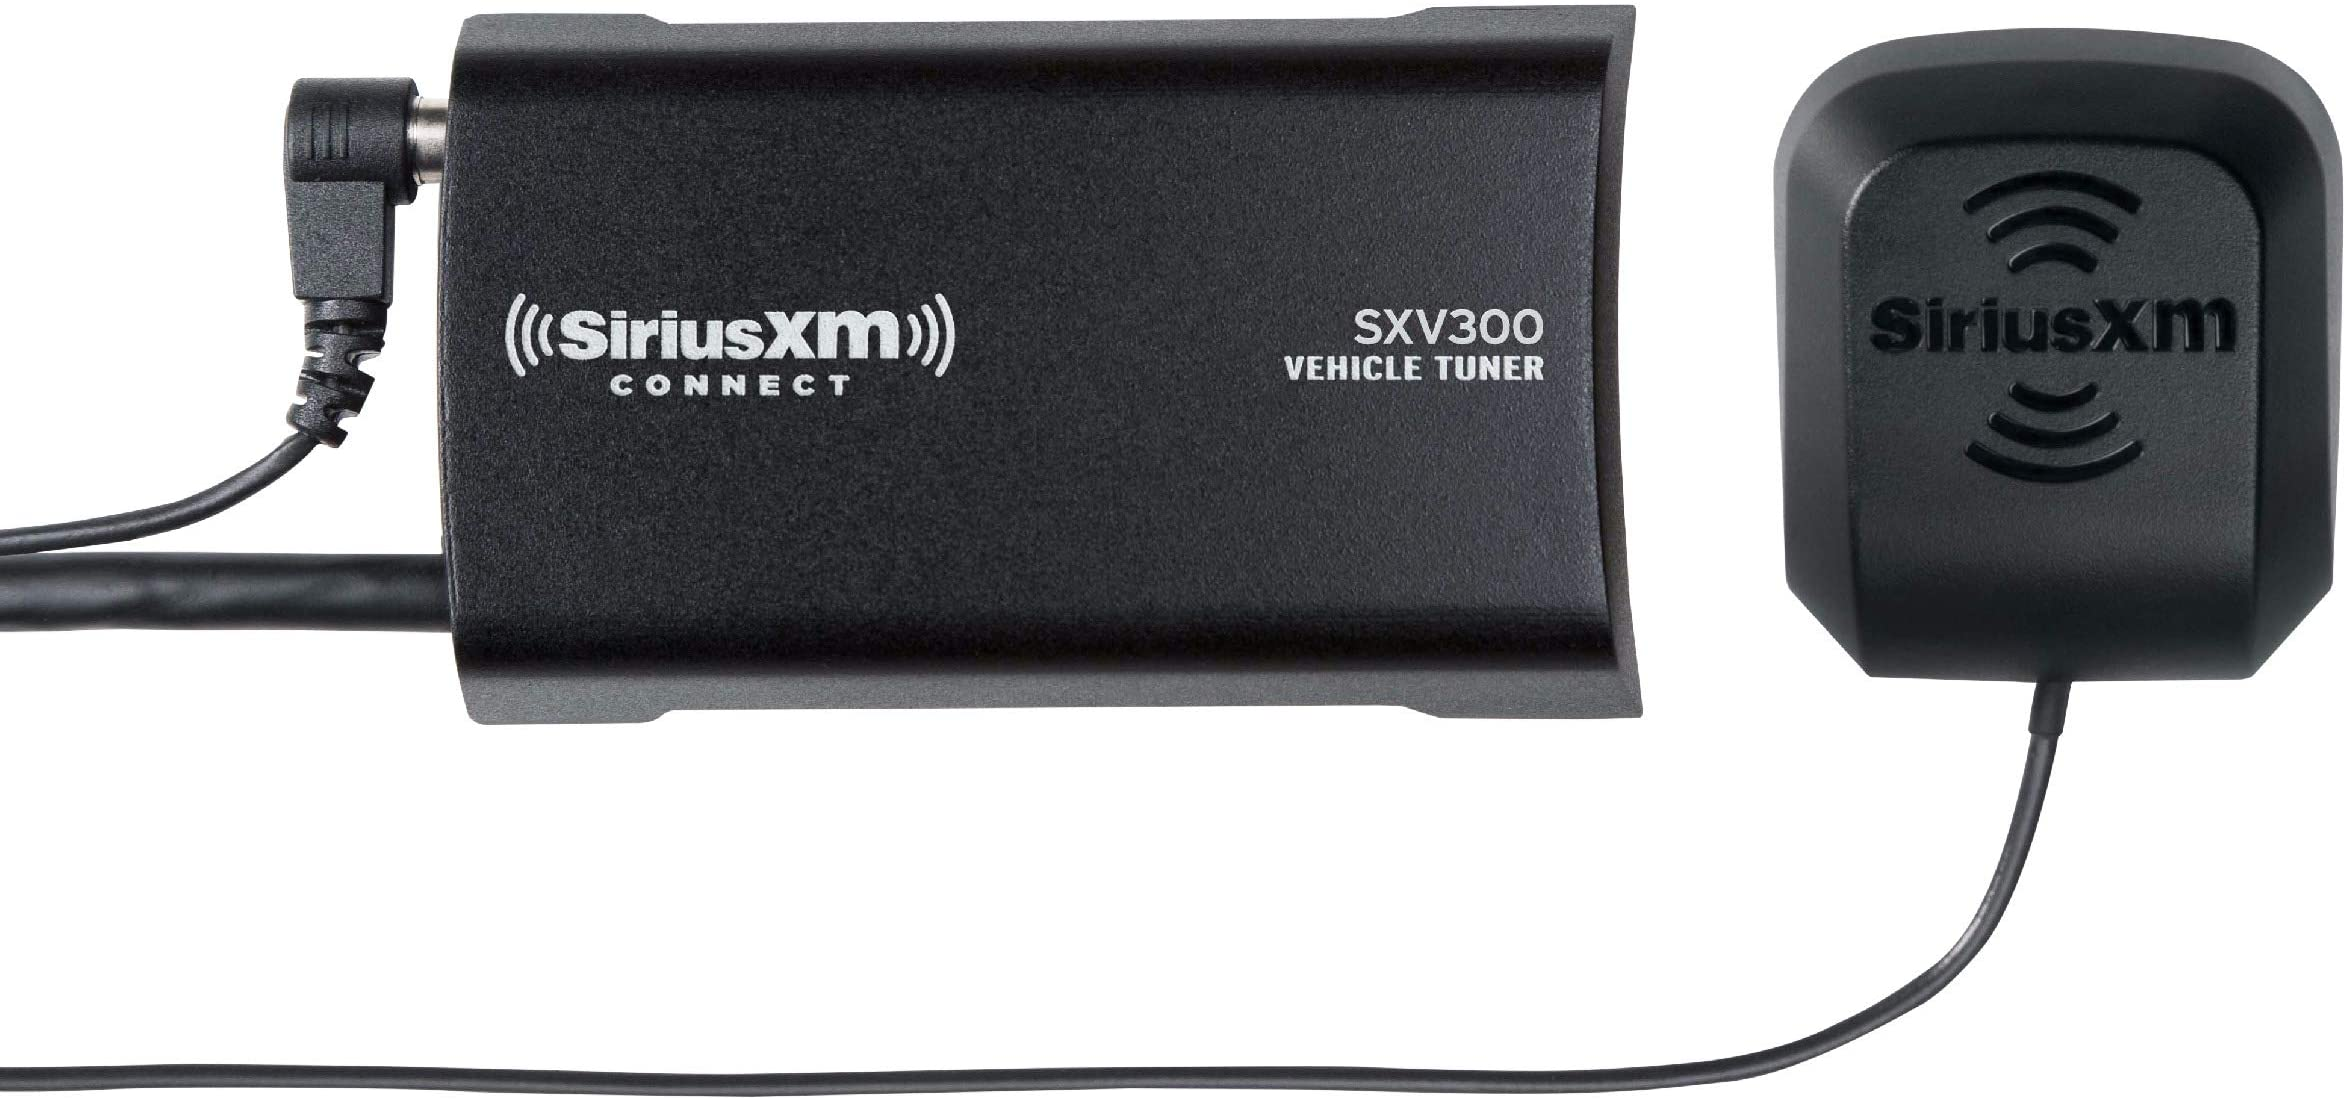 SiriusXM SXV300v1 Connect Vehicle Tuner Kit for Satellite Radio with Free 3 Months Satellite and Streaming Service